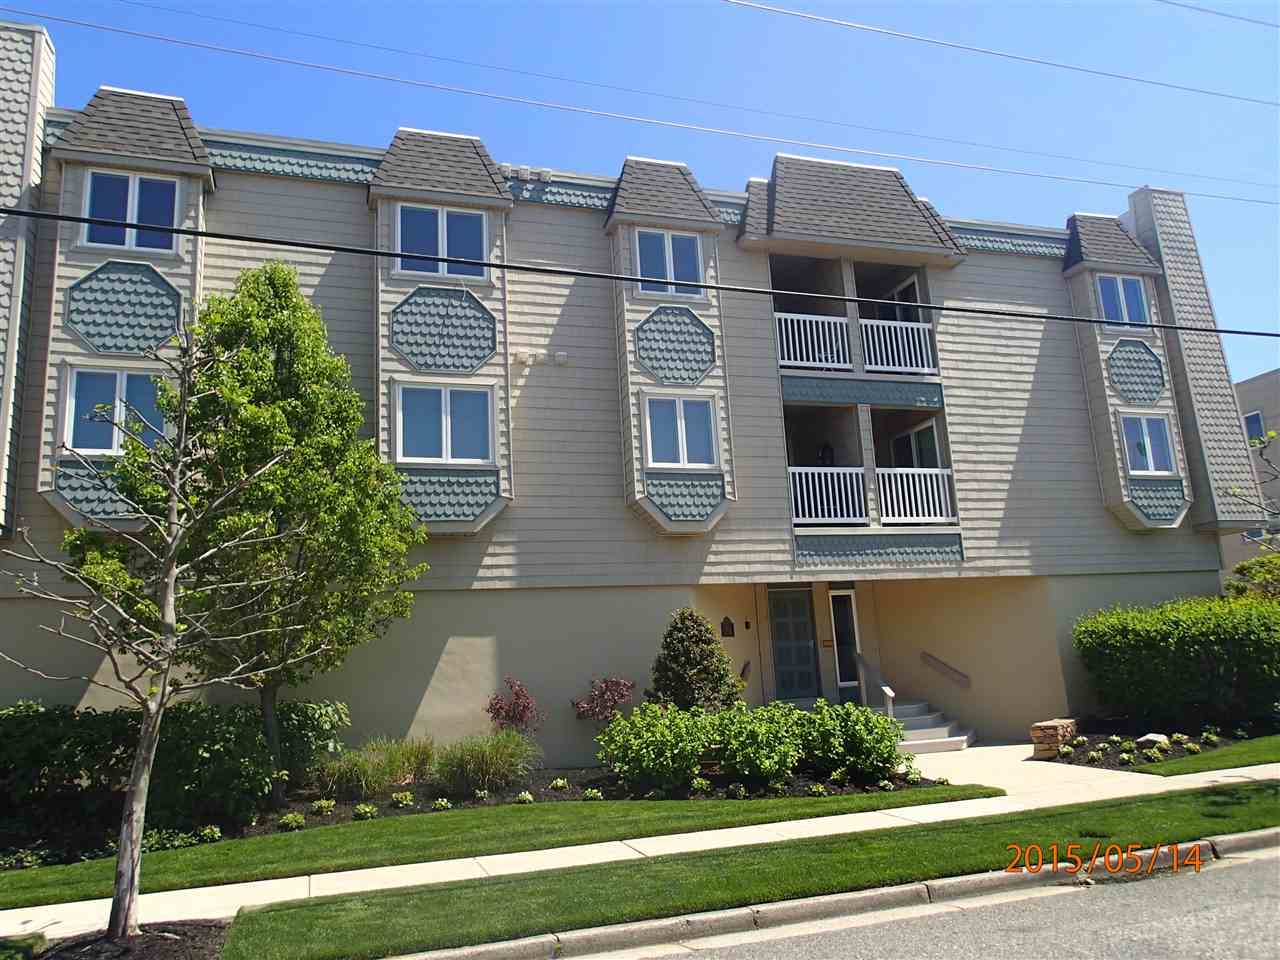 10800, Unit B1 Third, Stone Harbor